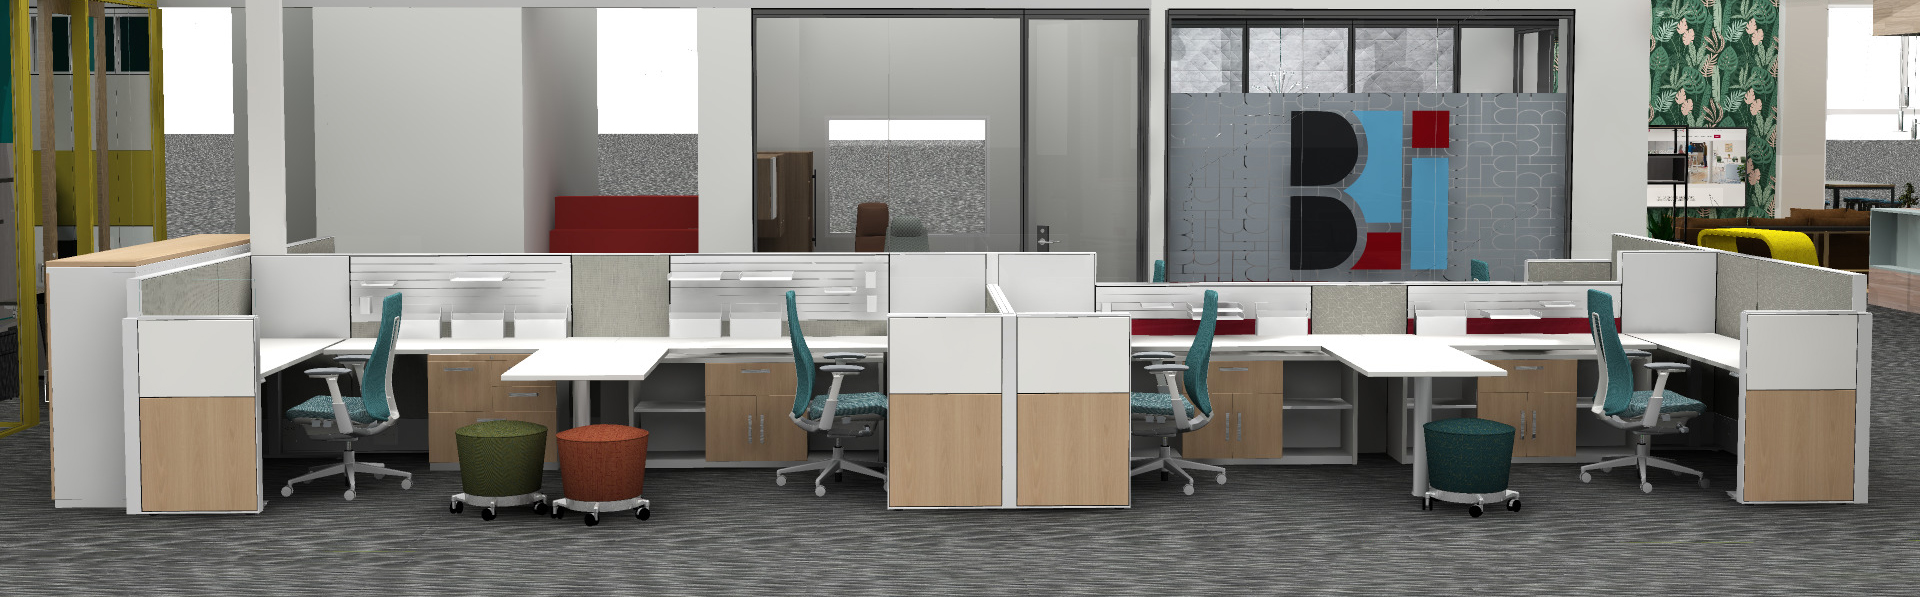 Reconfigured Group of Workstations at BII's Furniture Showroom in Boise, ID